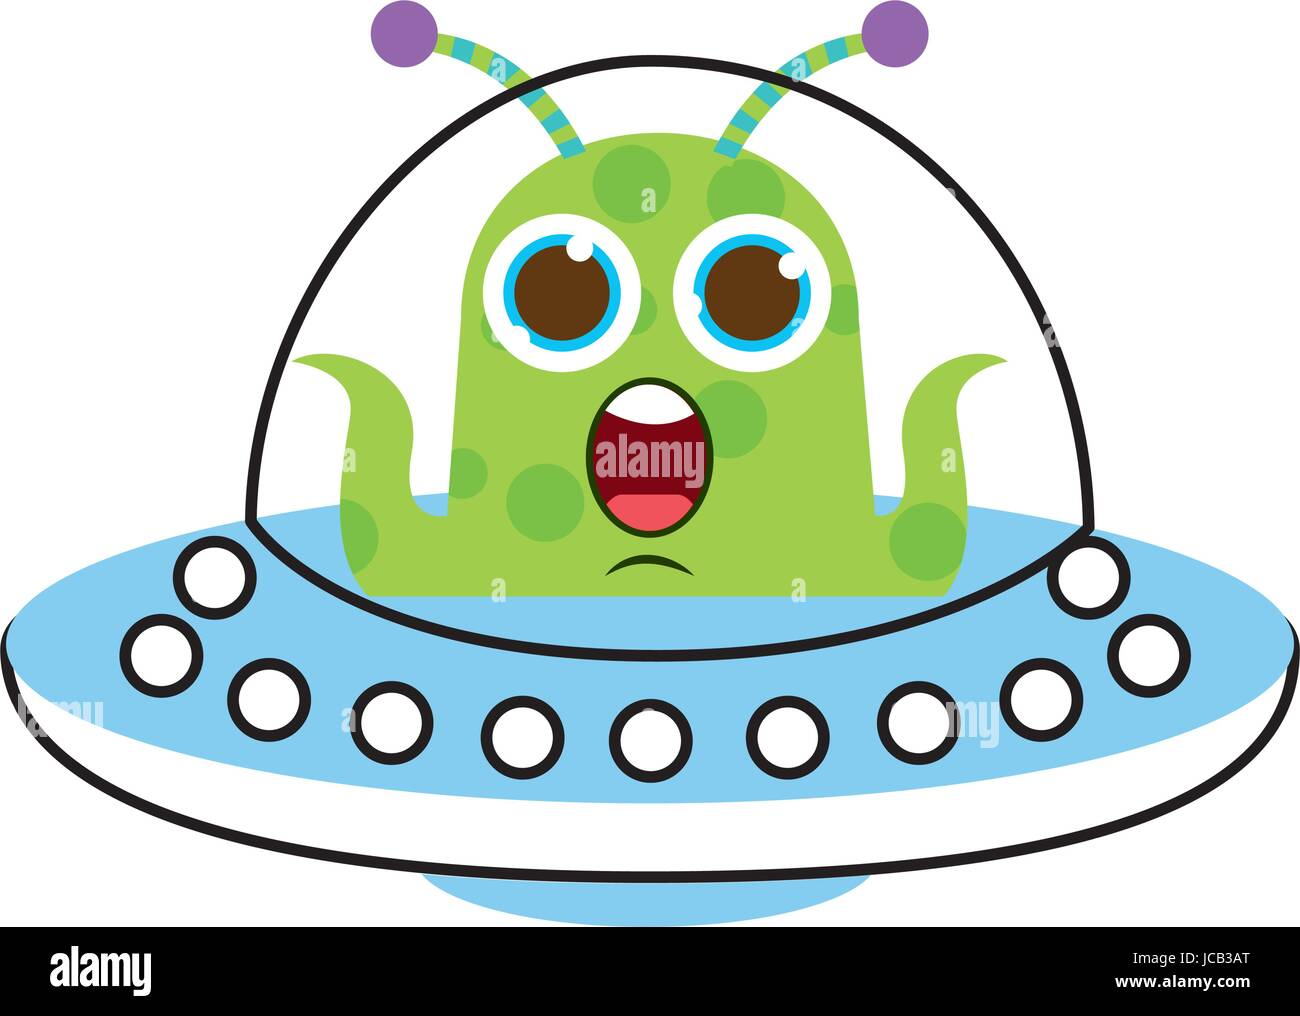 unidentified flying object with alien - Stock Image